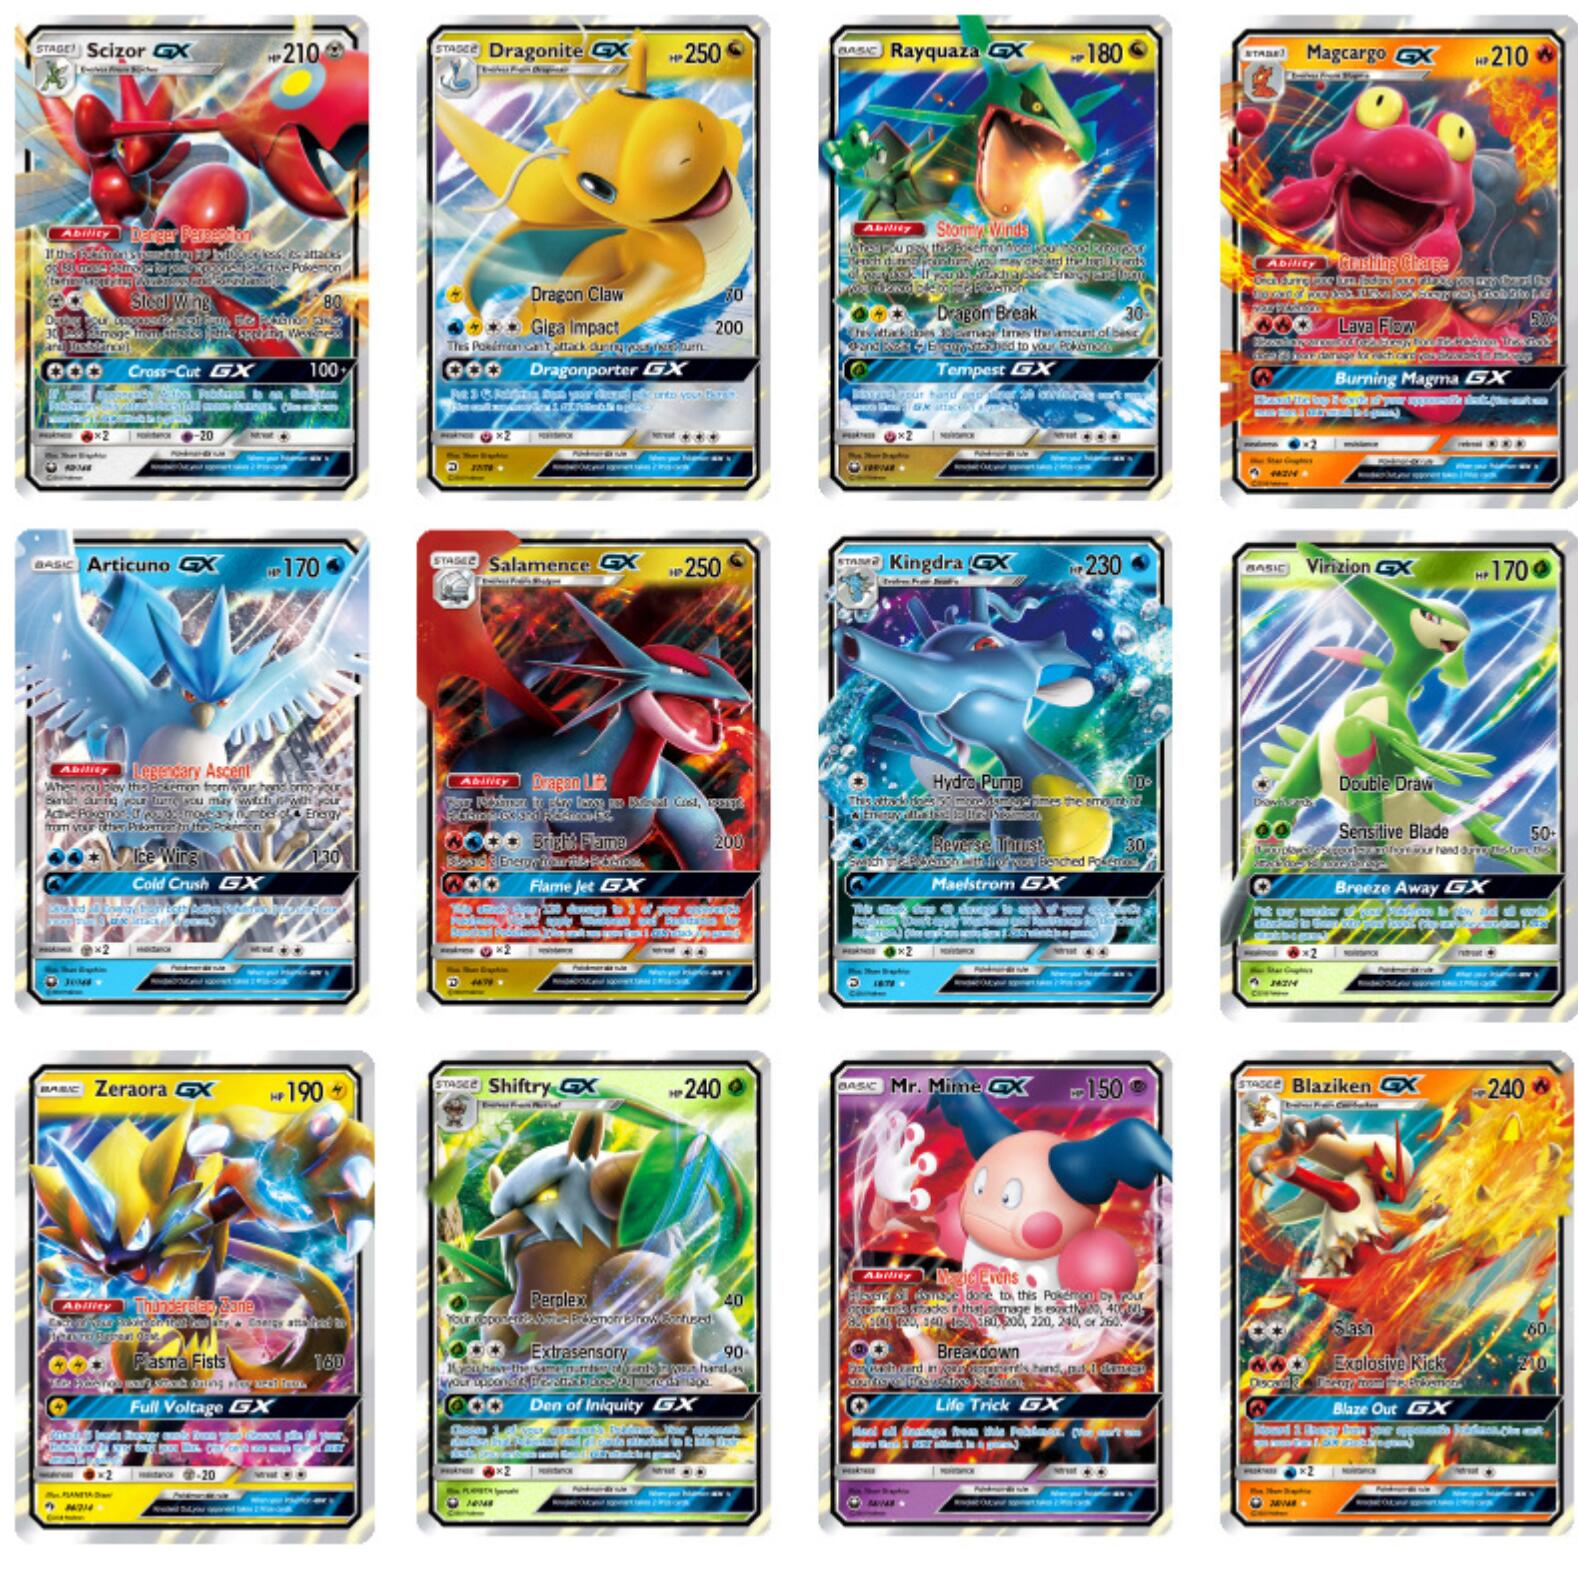 200-pcs-25-50pcs-gx-mega-shining-cards-game-battle-carte-100pcs-trading-cards-game-children-toy